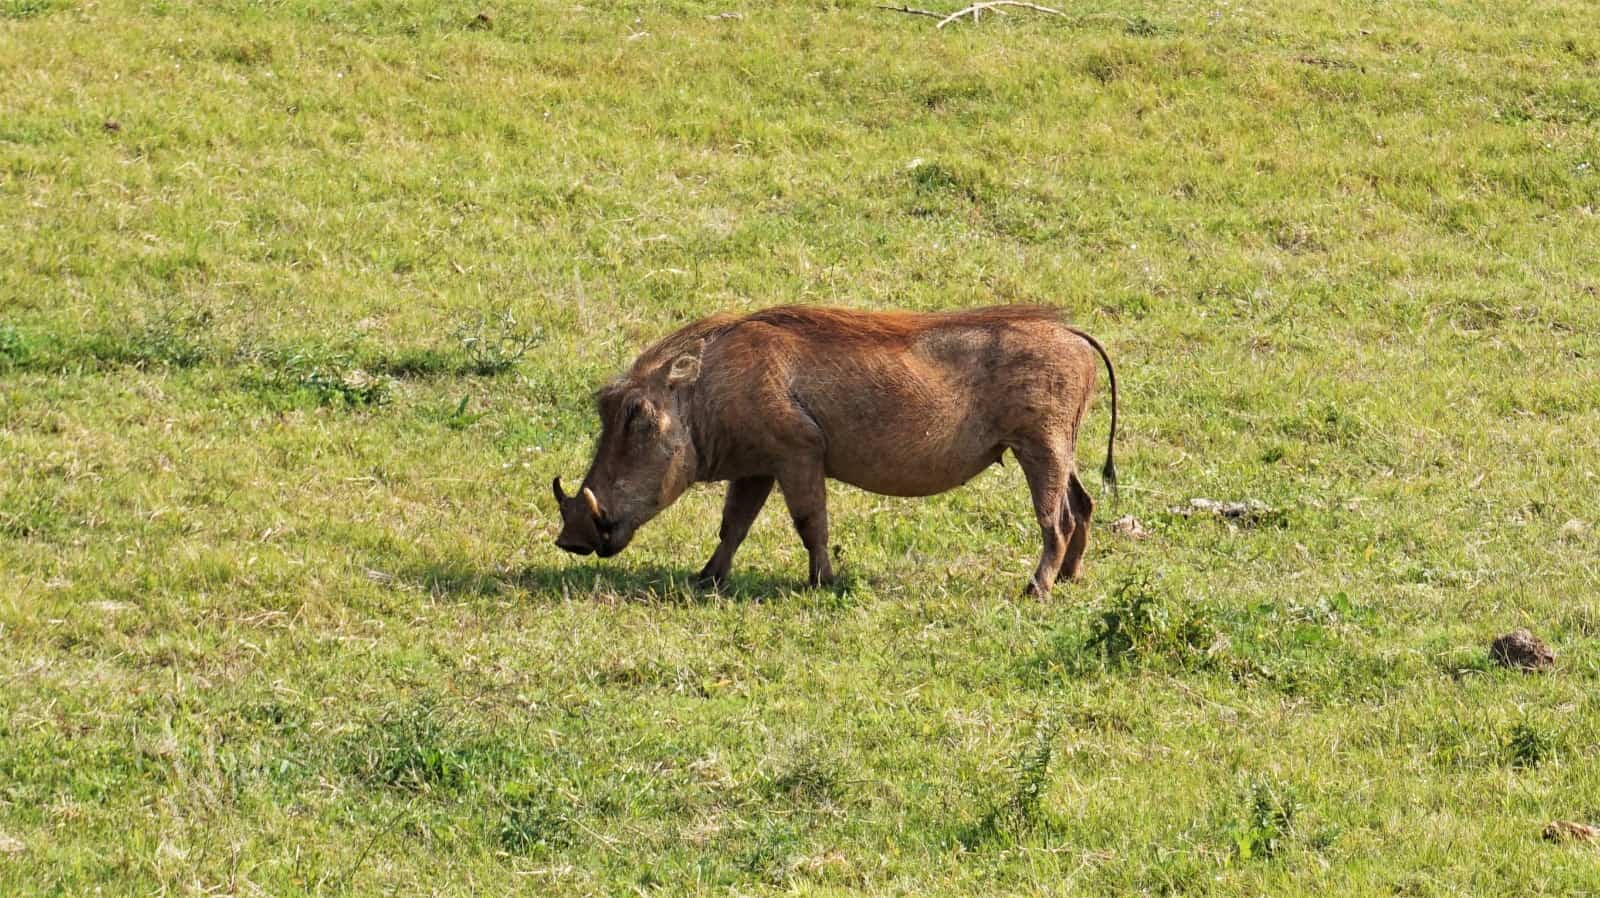 One of many warthogs we saw in Addo Elephant National Park